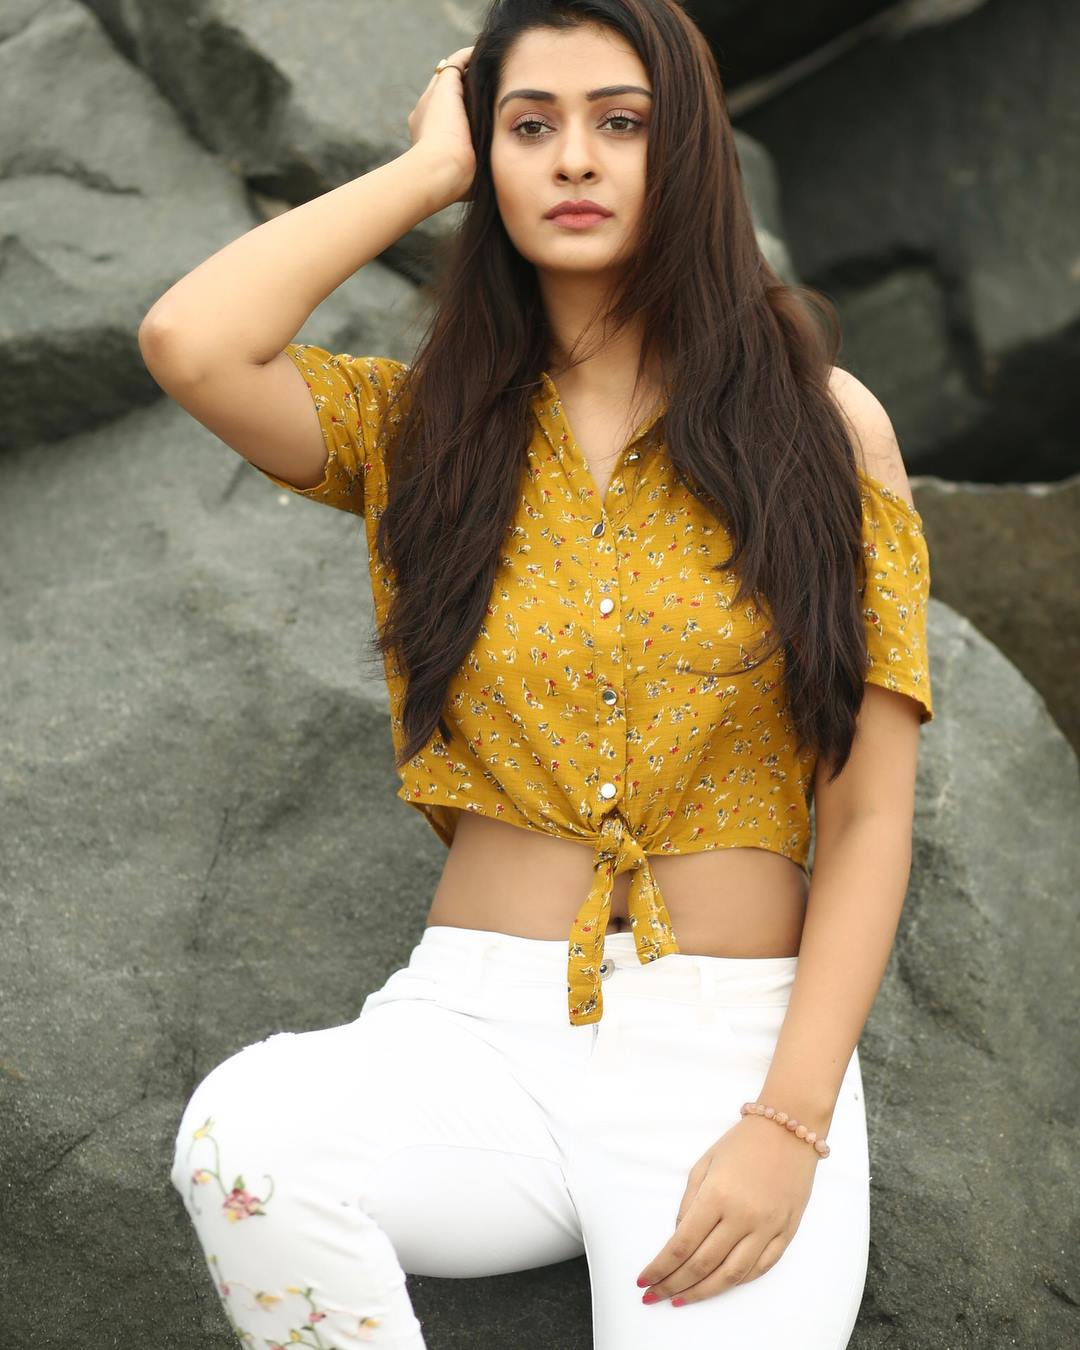 Rajput Payal RX100 Cleavage Hot Still